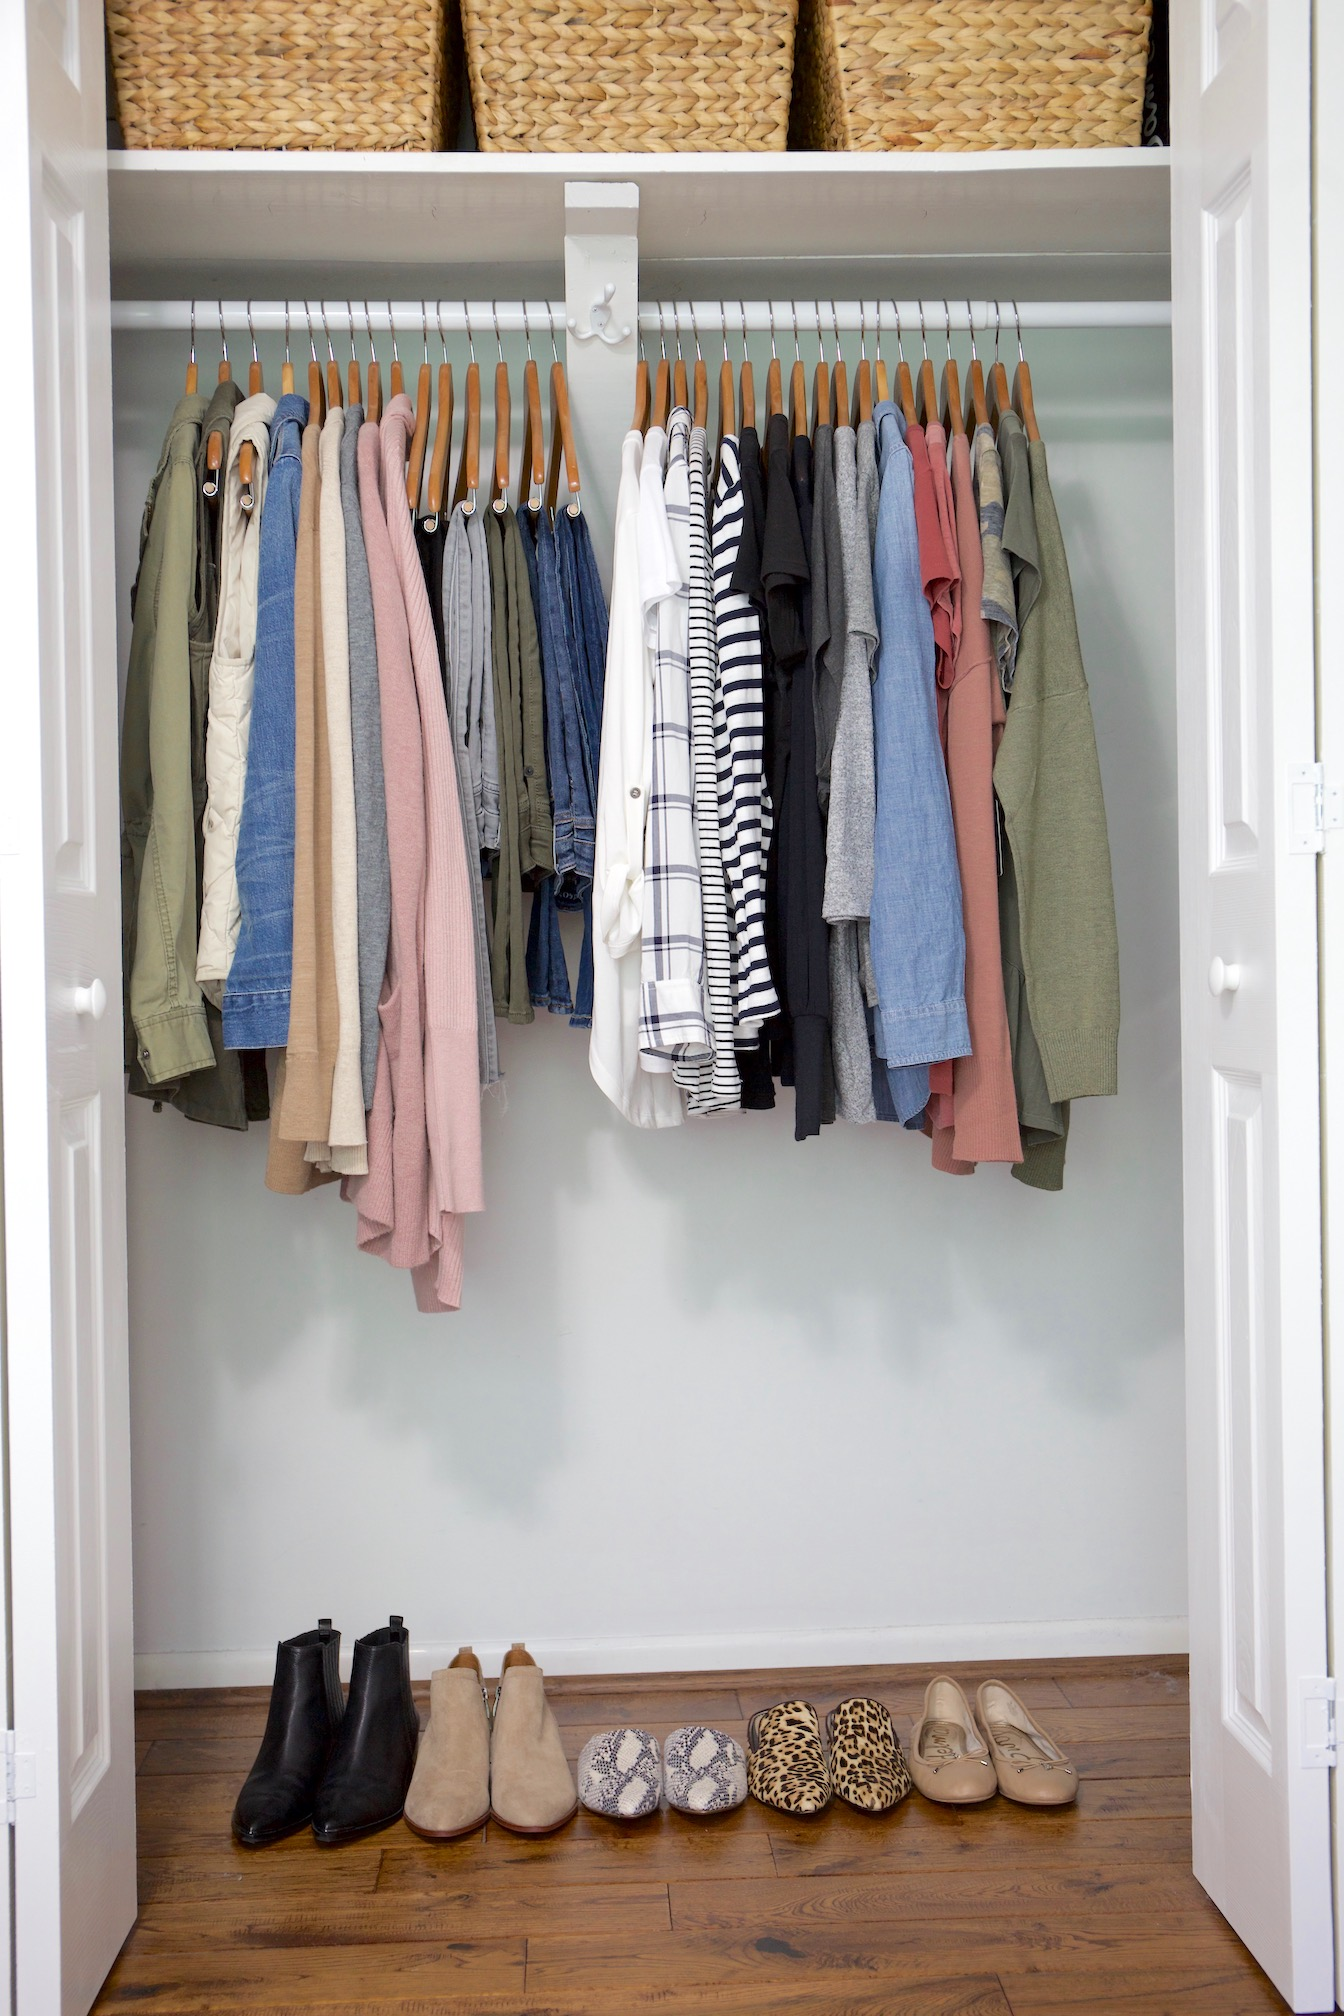 My Fall 2018 Capsule Wardrobe - closet